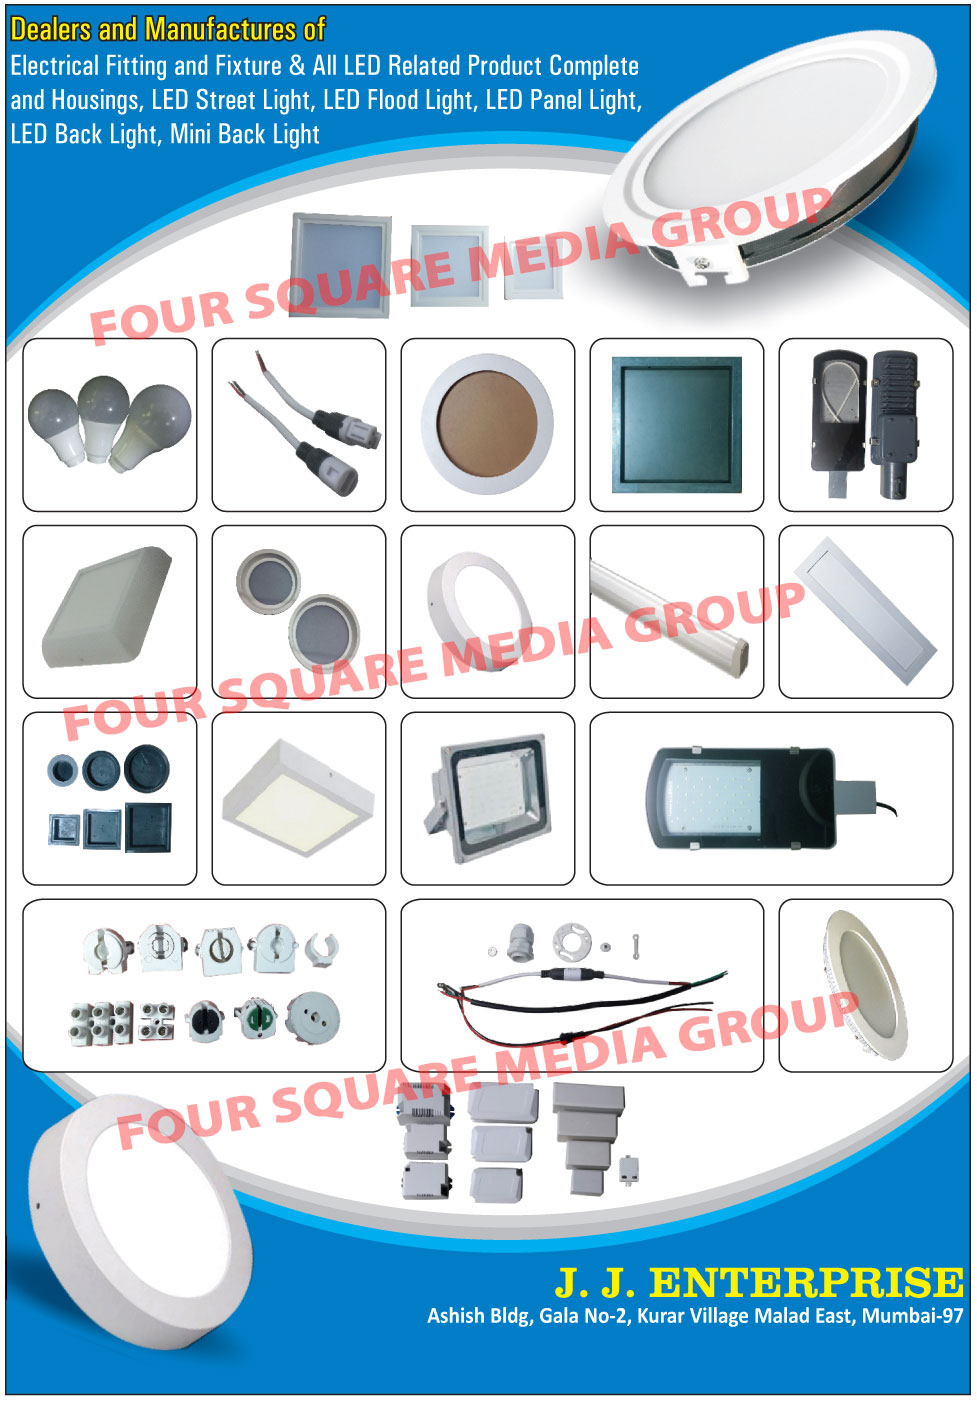 Electrical Fittings, Electrical Fixtures, Led Lights, Led Street Lights, Led Flood Lights, Led Panel Lights, Led Back Lights, Mini Back Lights, Led Housings, Led Light Housings, Led Street Light Housings, Led Flood Light Housings, Led Panel Light Housings, Led Back Light Housings, Mini Back Light Housings